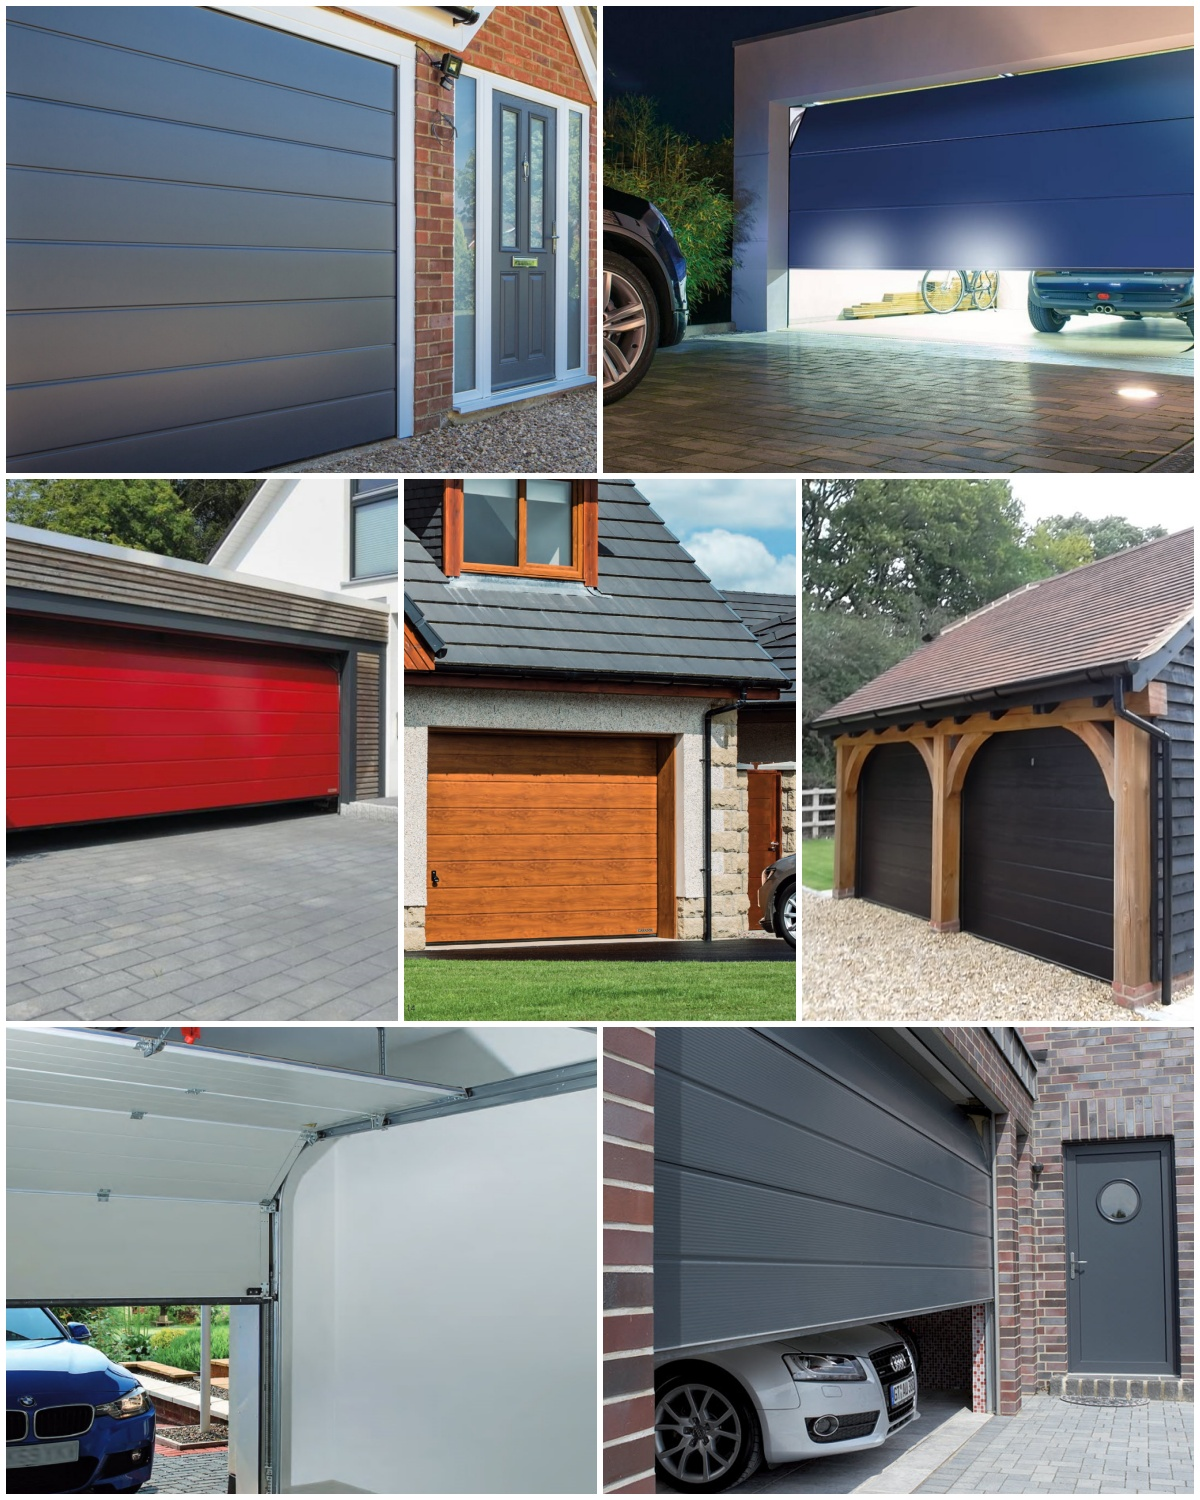 Different styles of sectional garage doors